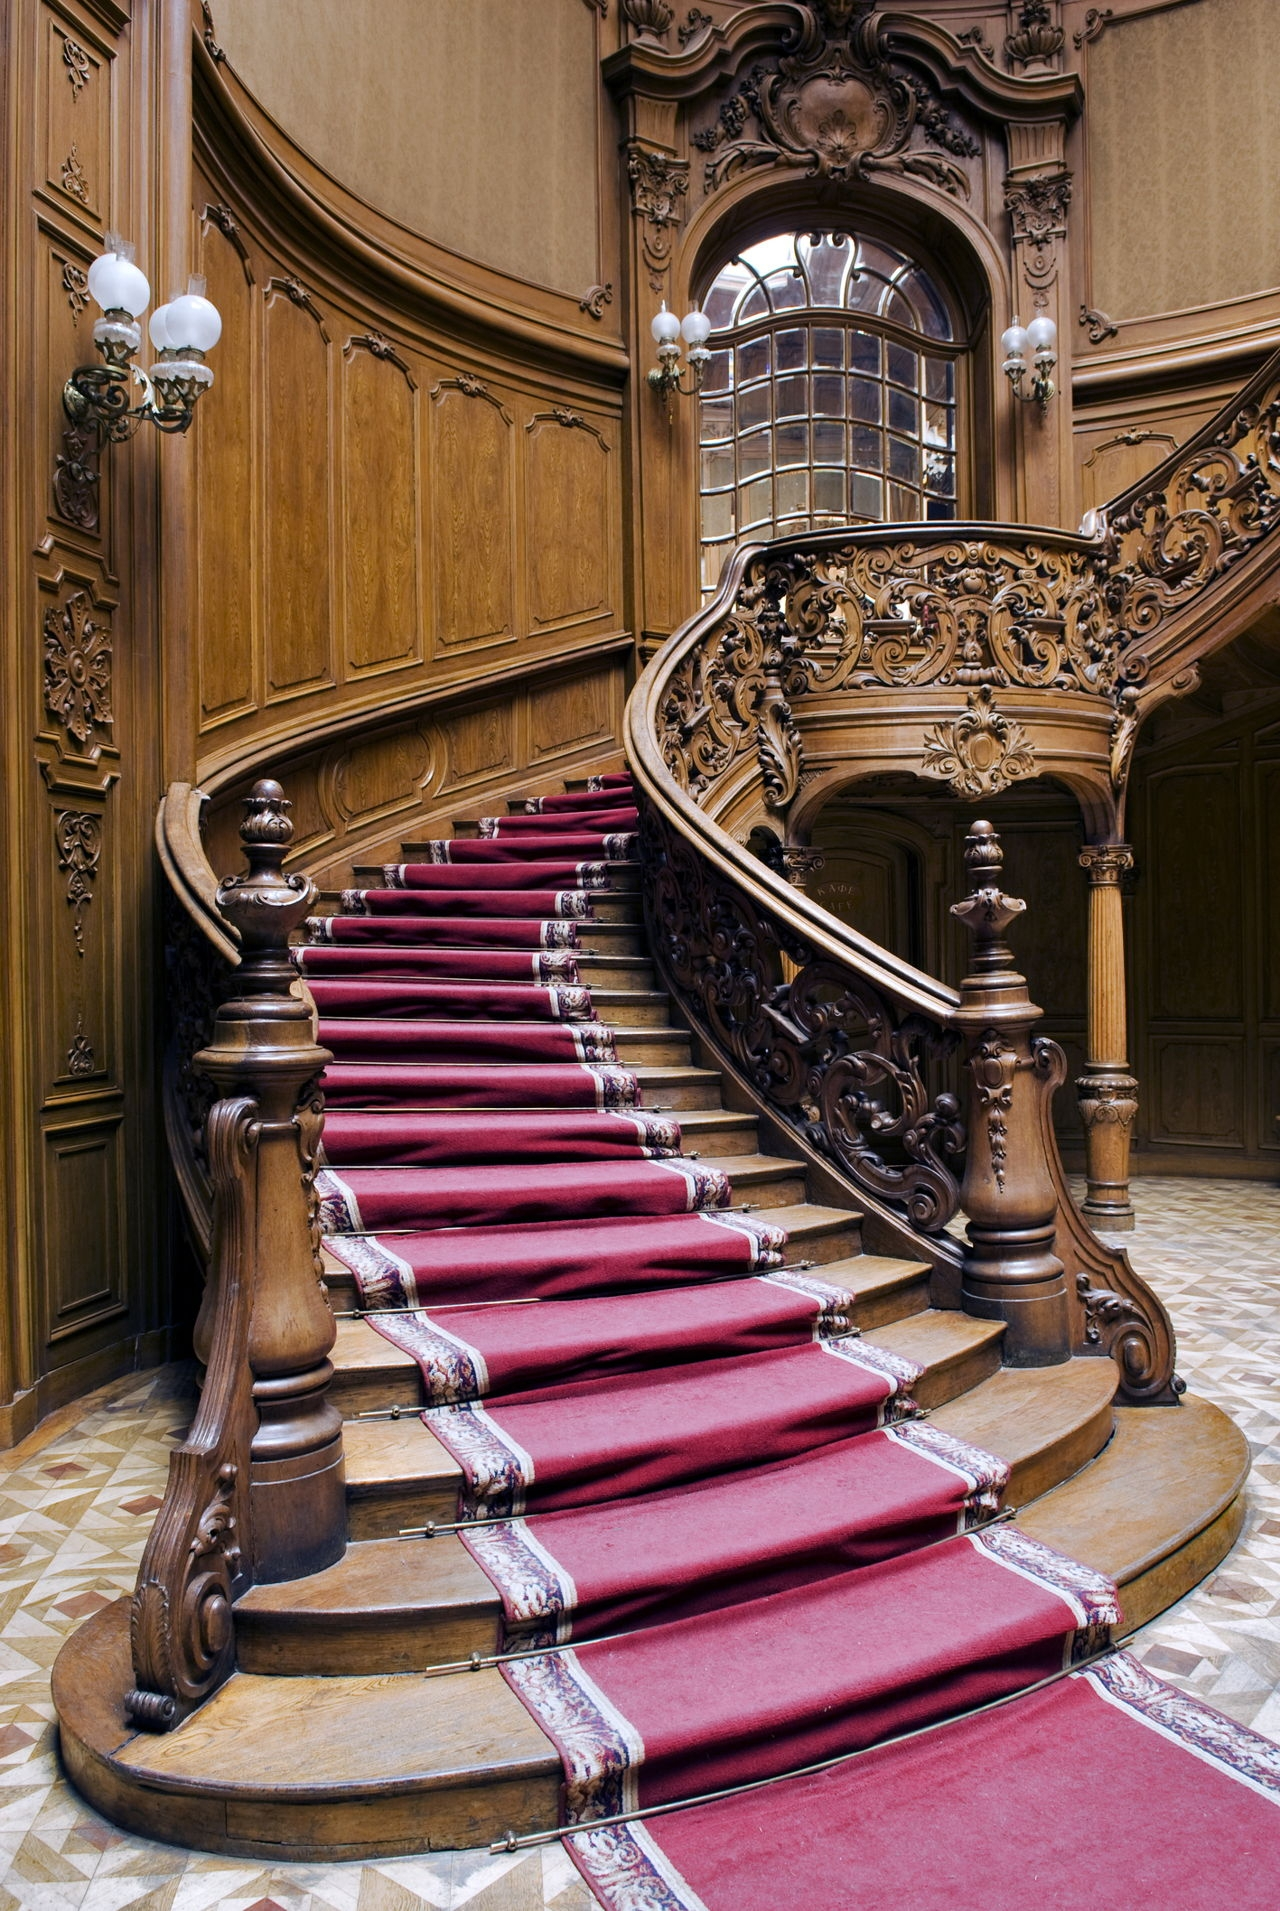 7 Alternatives To Carpets On Stairs That Are Really | Carpet Strips For Stairs